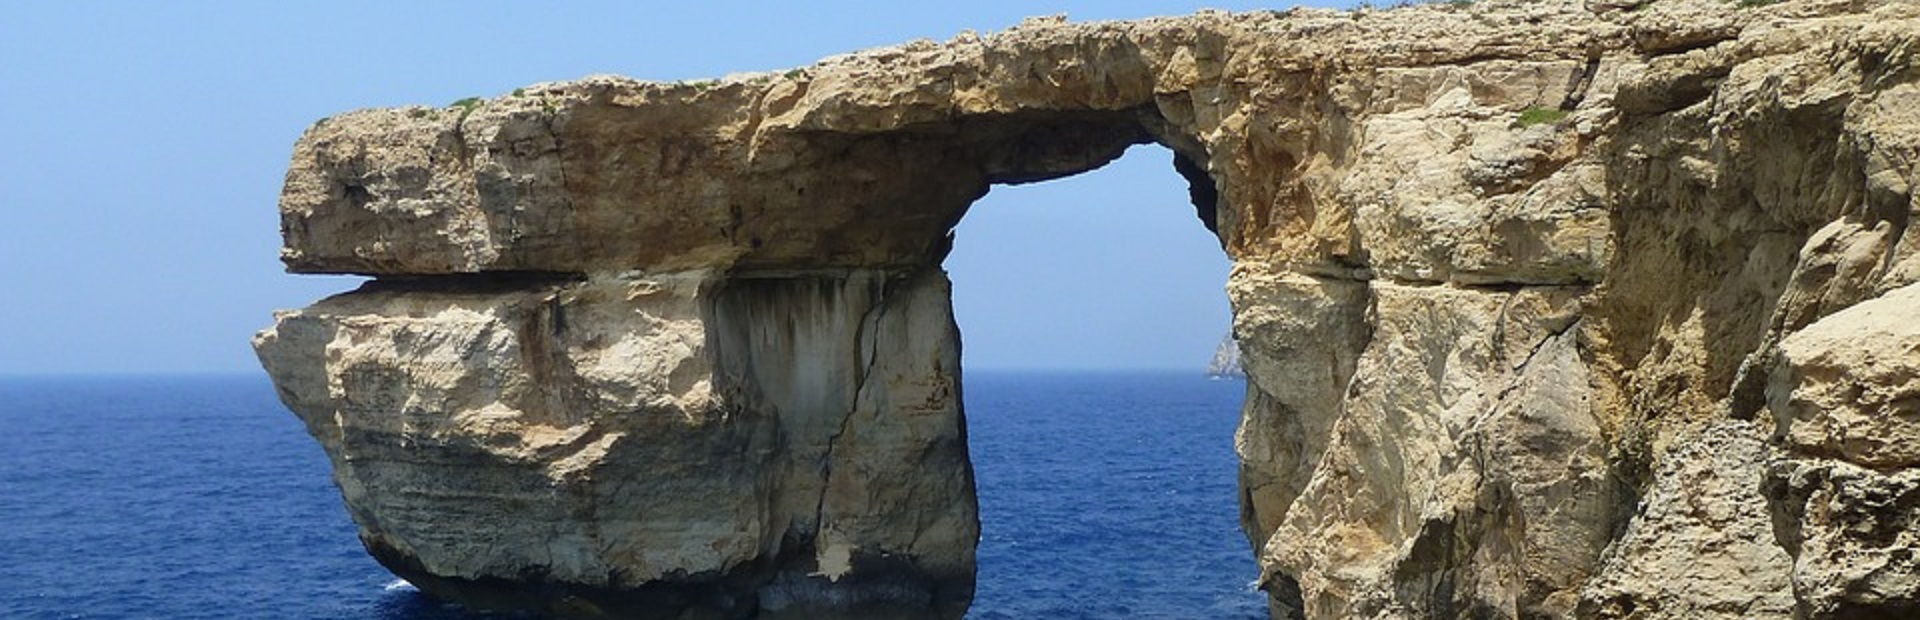 azure-window-2715329_960_720